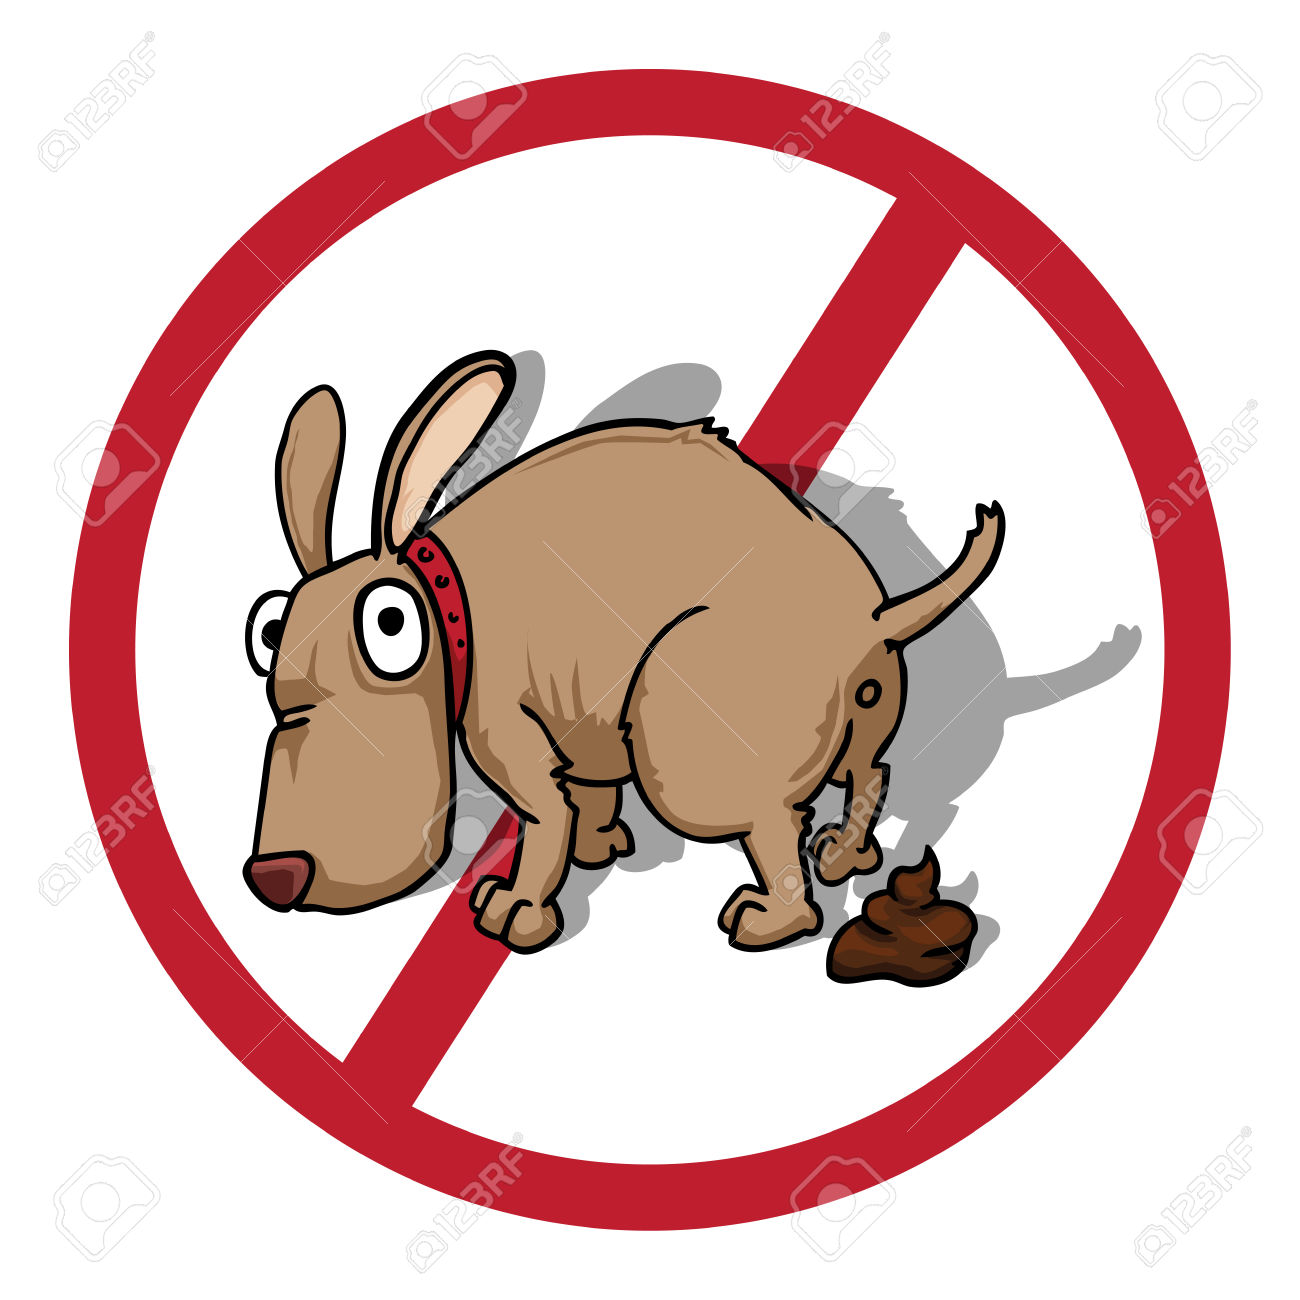 No dog poop clipart.